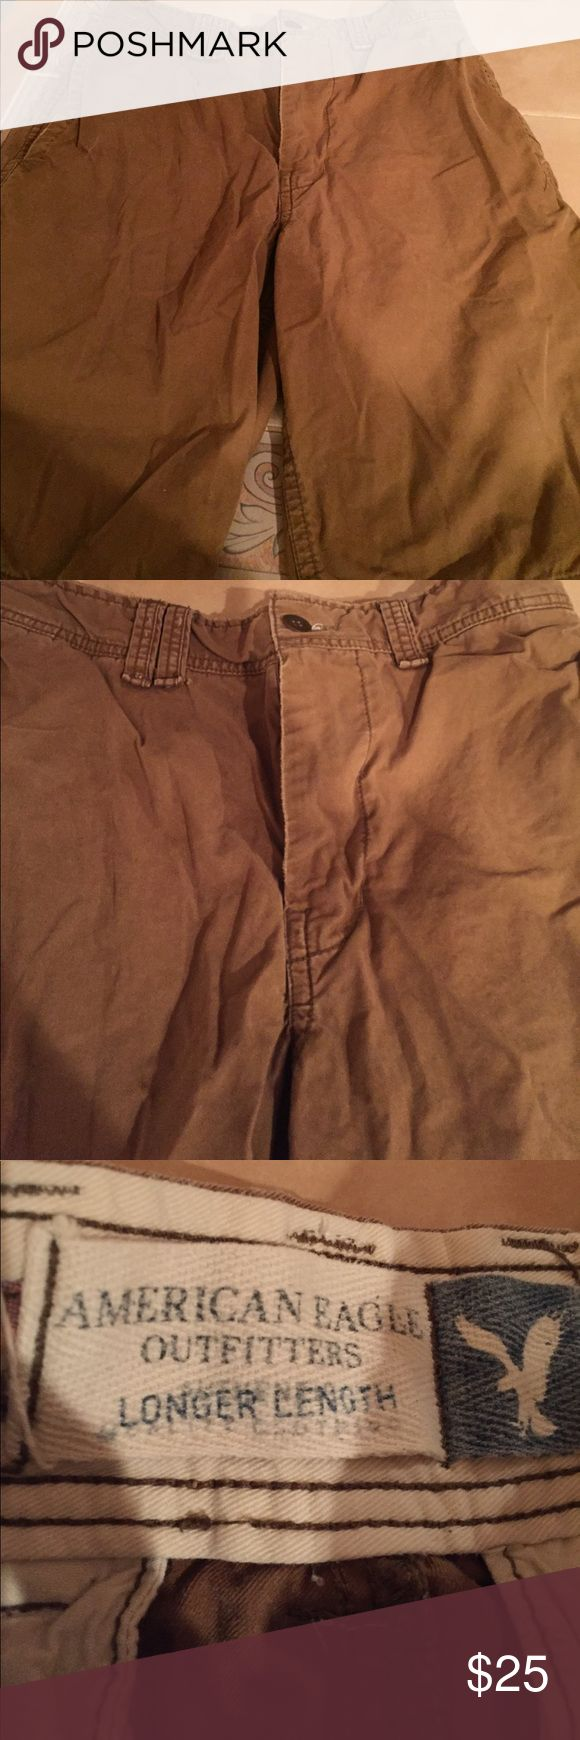 ✂️American Eagle Outfitters✂️Med Brown Shorts S 30 Men's American Eagle Outfitters Longer Length Medium Brown Shorts Size 30. Condition is good. American Eagle Outfitters Shorts